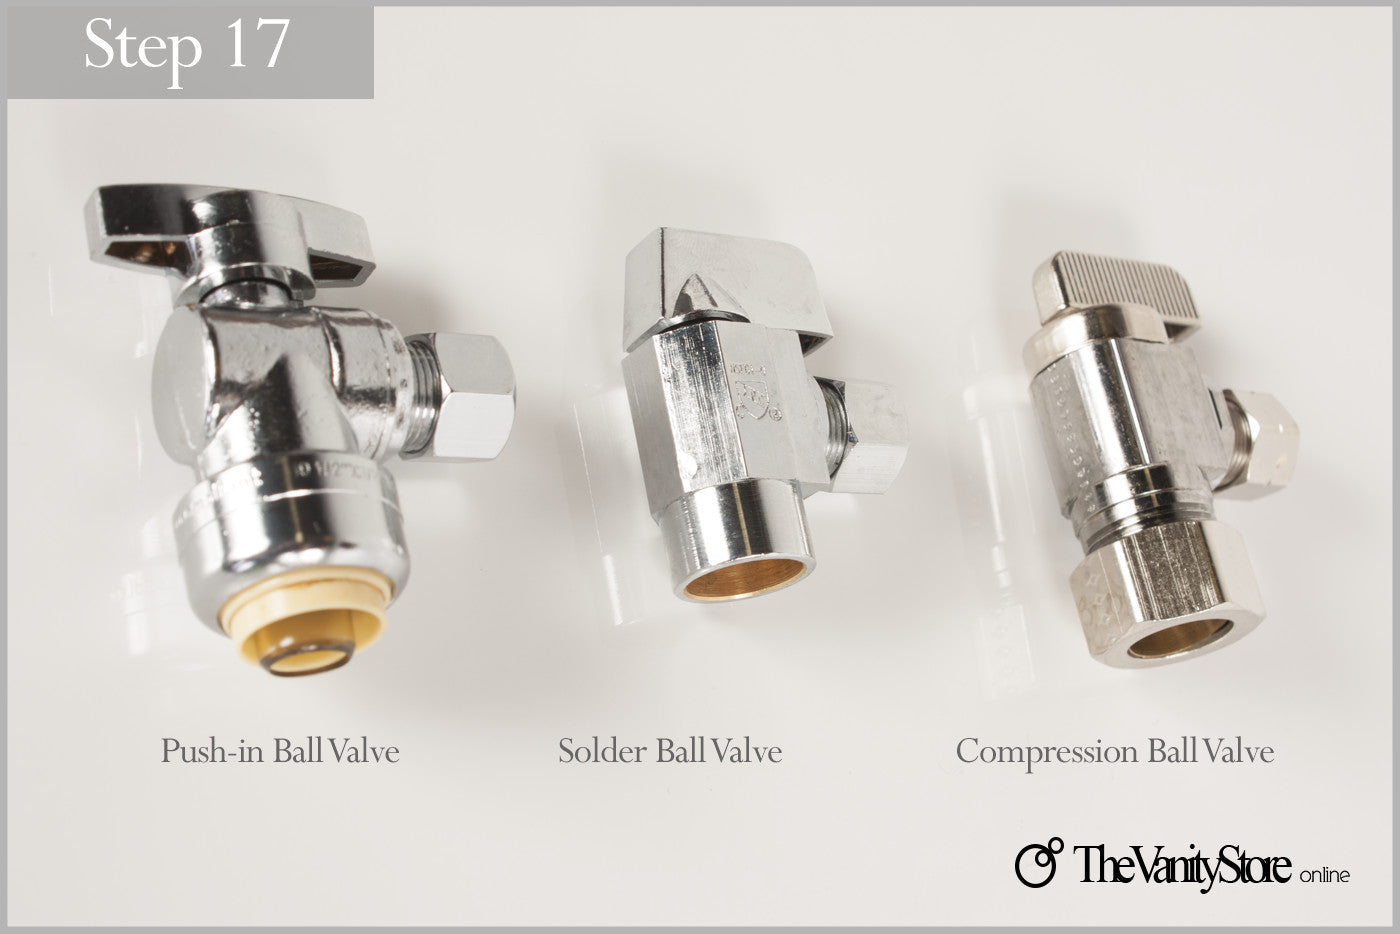 Step 17, Choose the shut-off valve right for you.